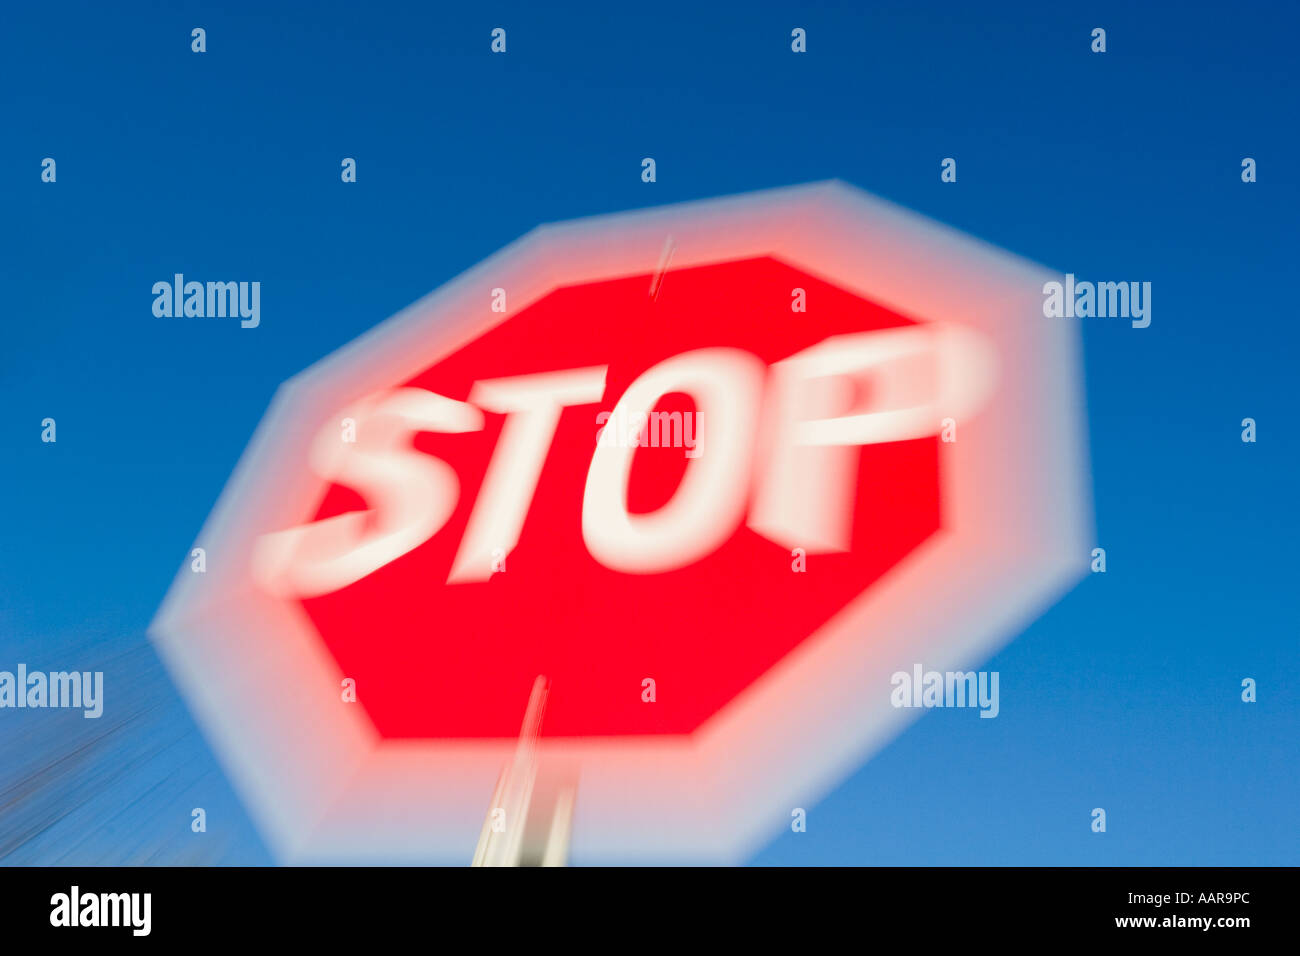 Stop sign in bright red and white against sunny blue sky - Stock Image